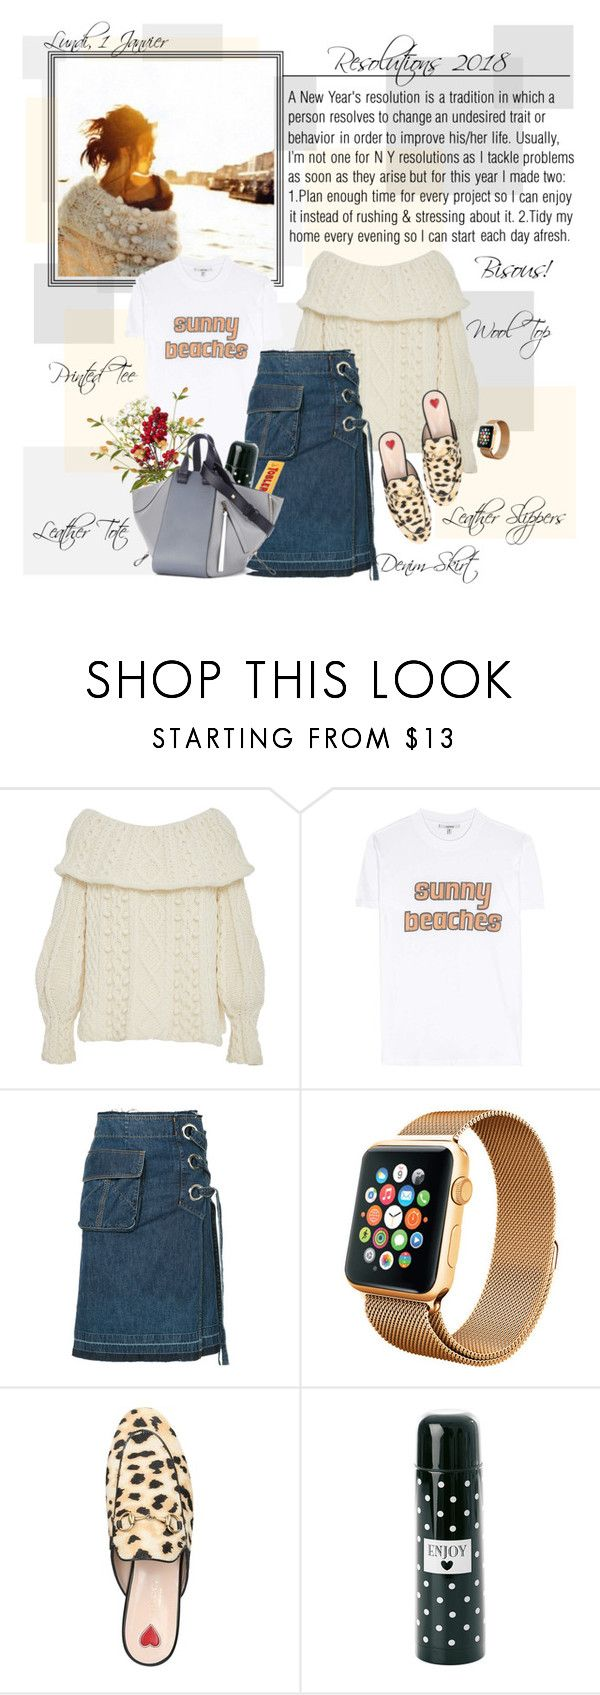 """""""Mon Style № 181 - 1 January, 2018"""" by mon-style-diary on Polyvore featuring Marisa Witkin, Ganni, Sacai, Gucci, Miss Étoile, Loewe, contestentry and polyPresents"""